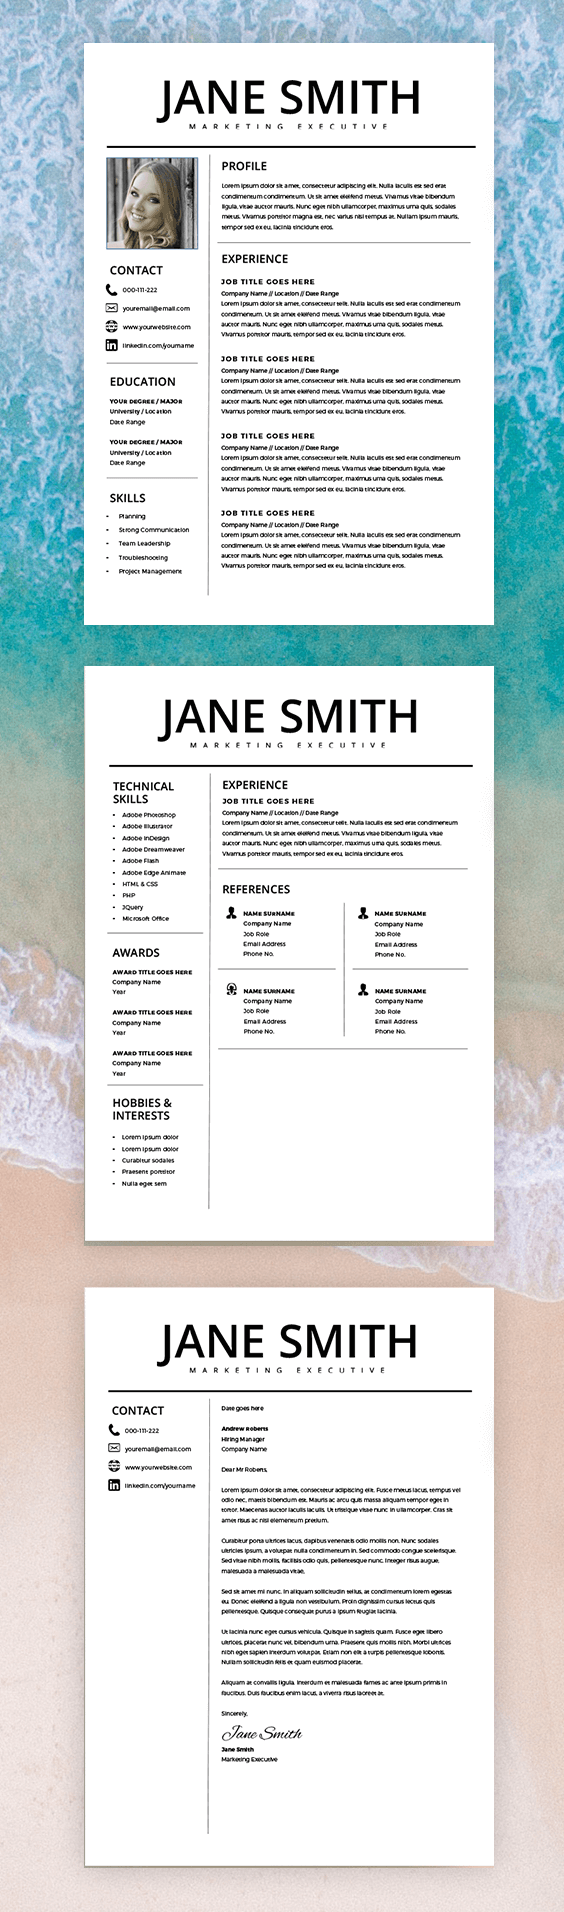 professional resume template word page compatible best cv template free cover letter - Free Professional Resume Template Word